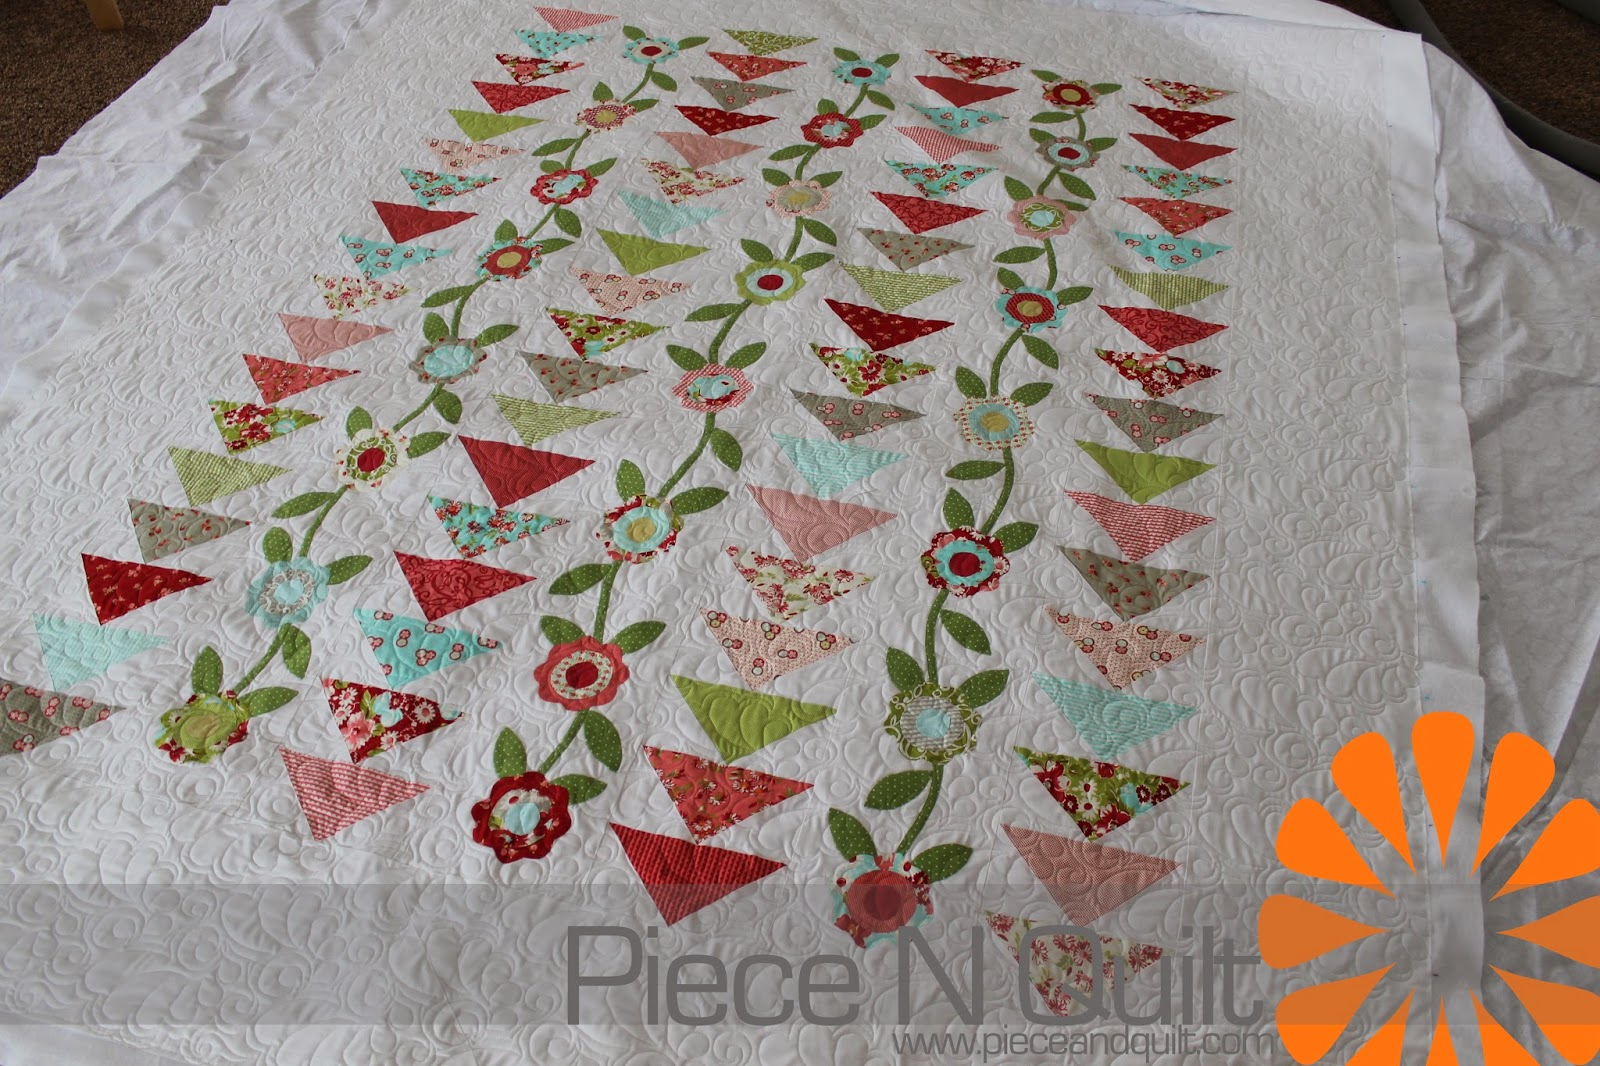 Piece N Quilt Flying Geese